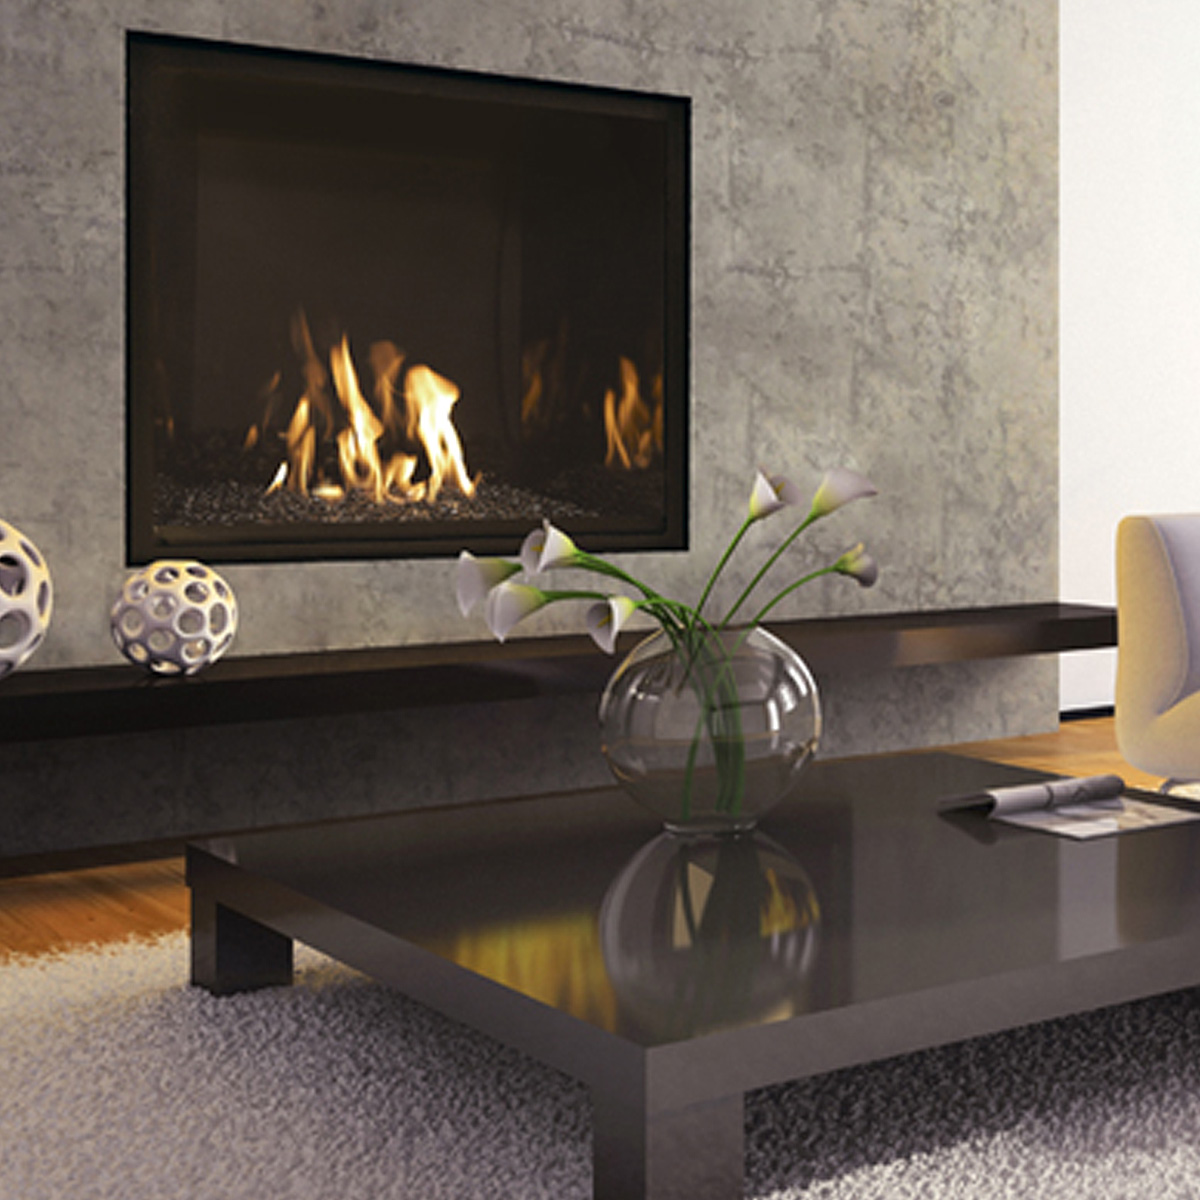 Mendota Fullview Fireplace Product Image